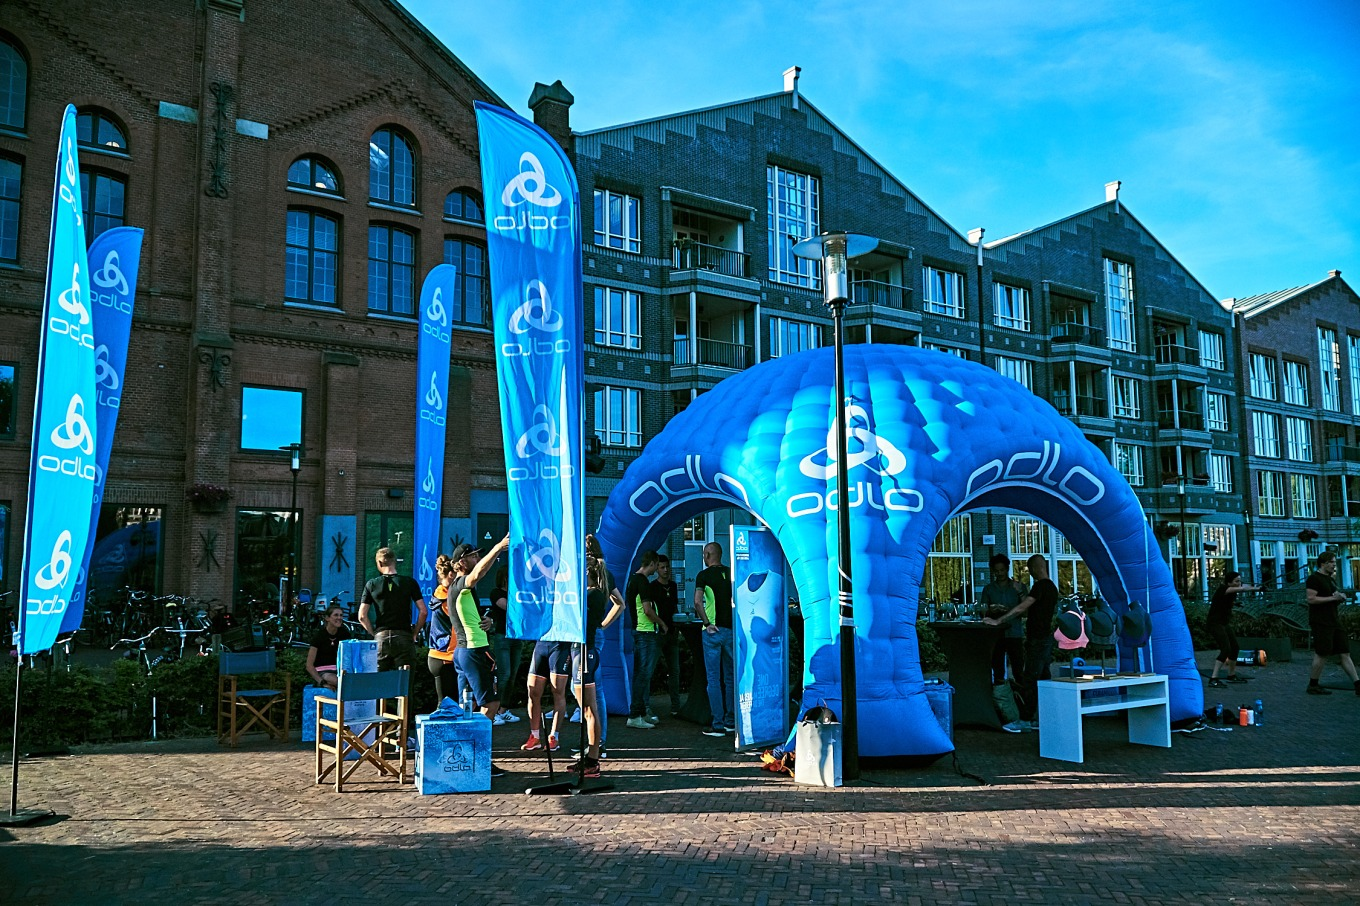 odlo cooltime event amsterdam.jpg